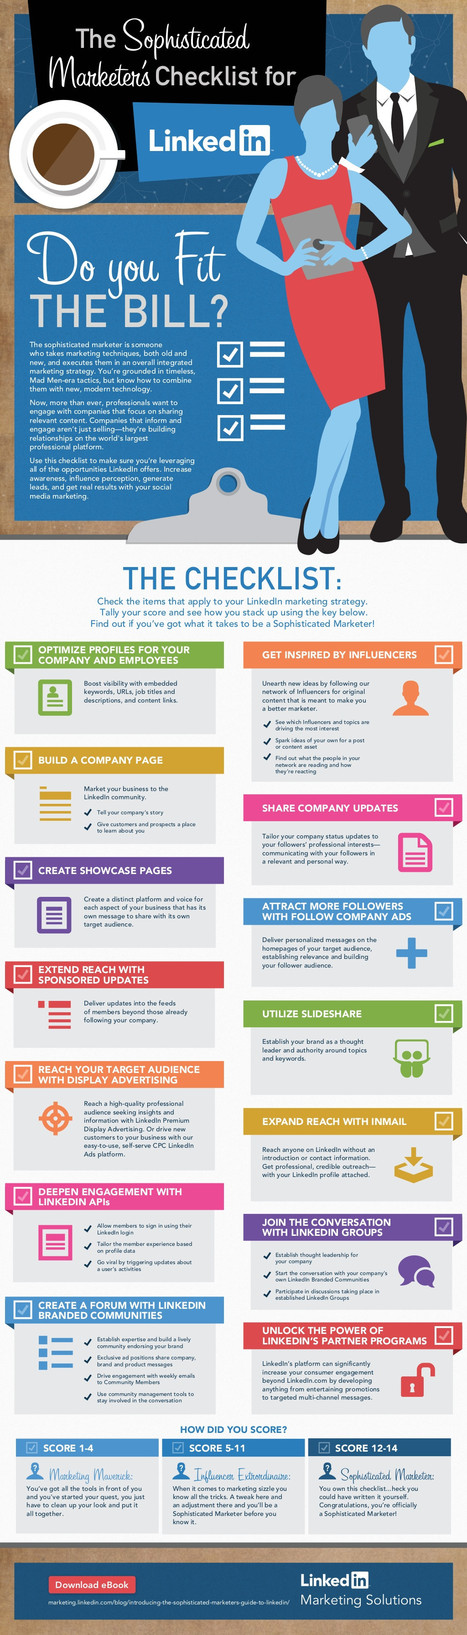 The Sophisticated Marketer's Checklist for LinkedIn - infographic | Profil Linkedin | Scoop.it